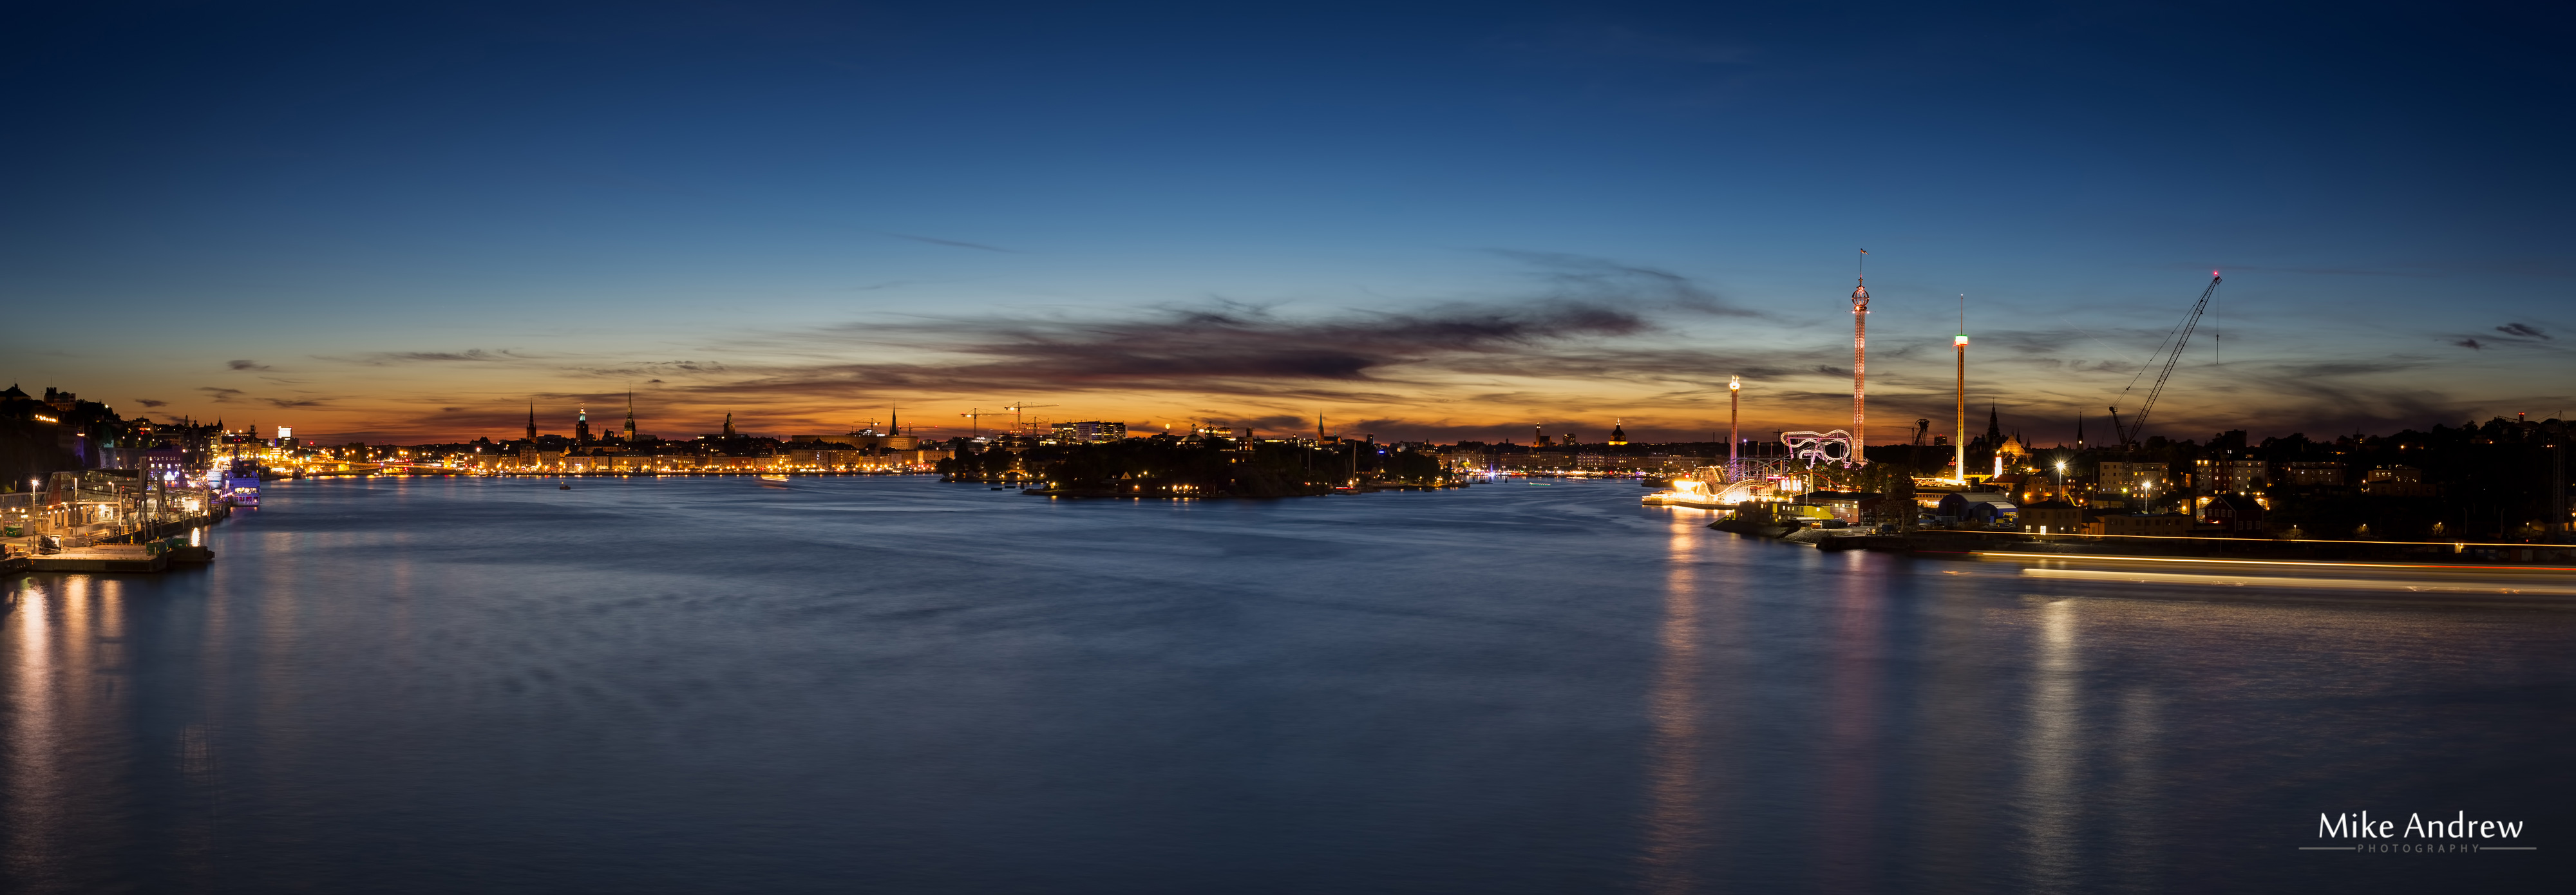 Stockholm Sweden by Night - Mike Andrew Photography